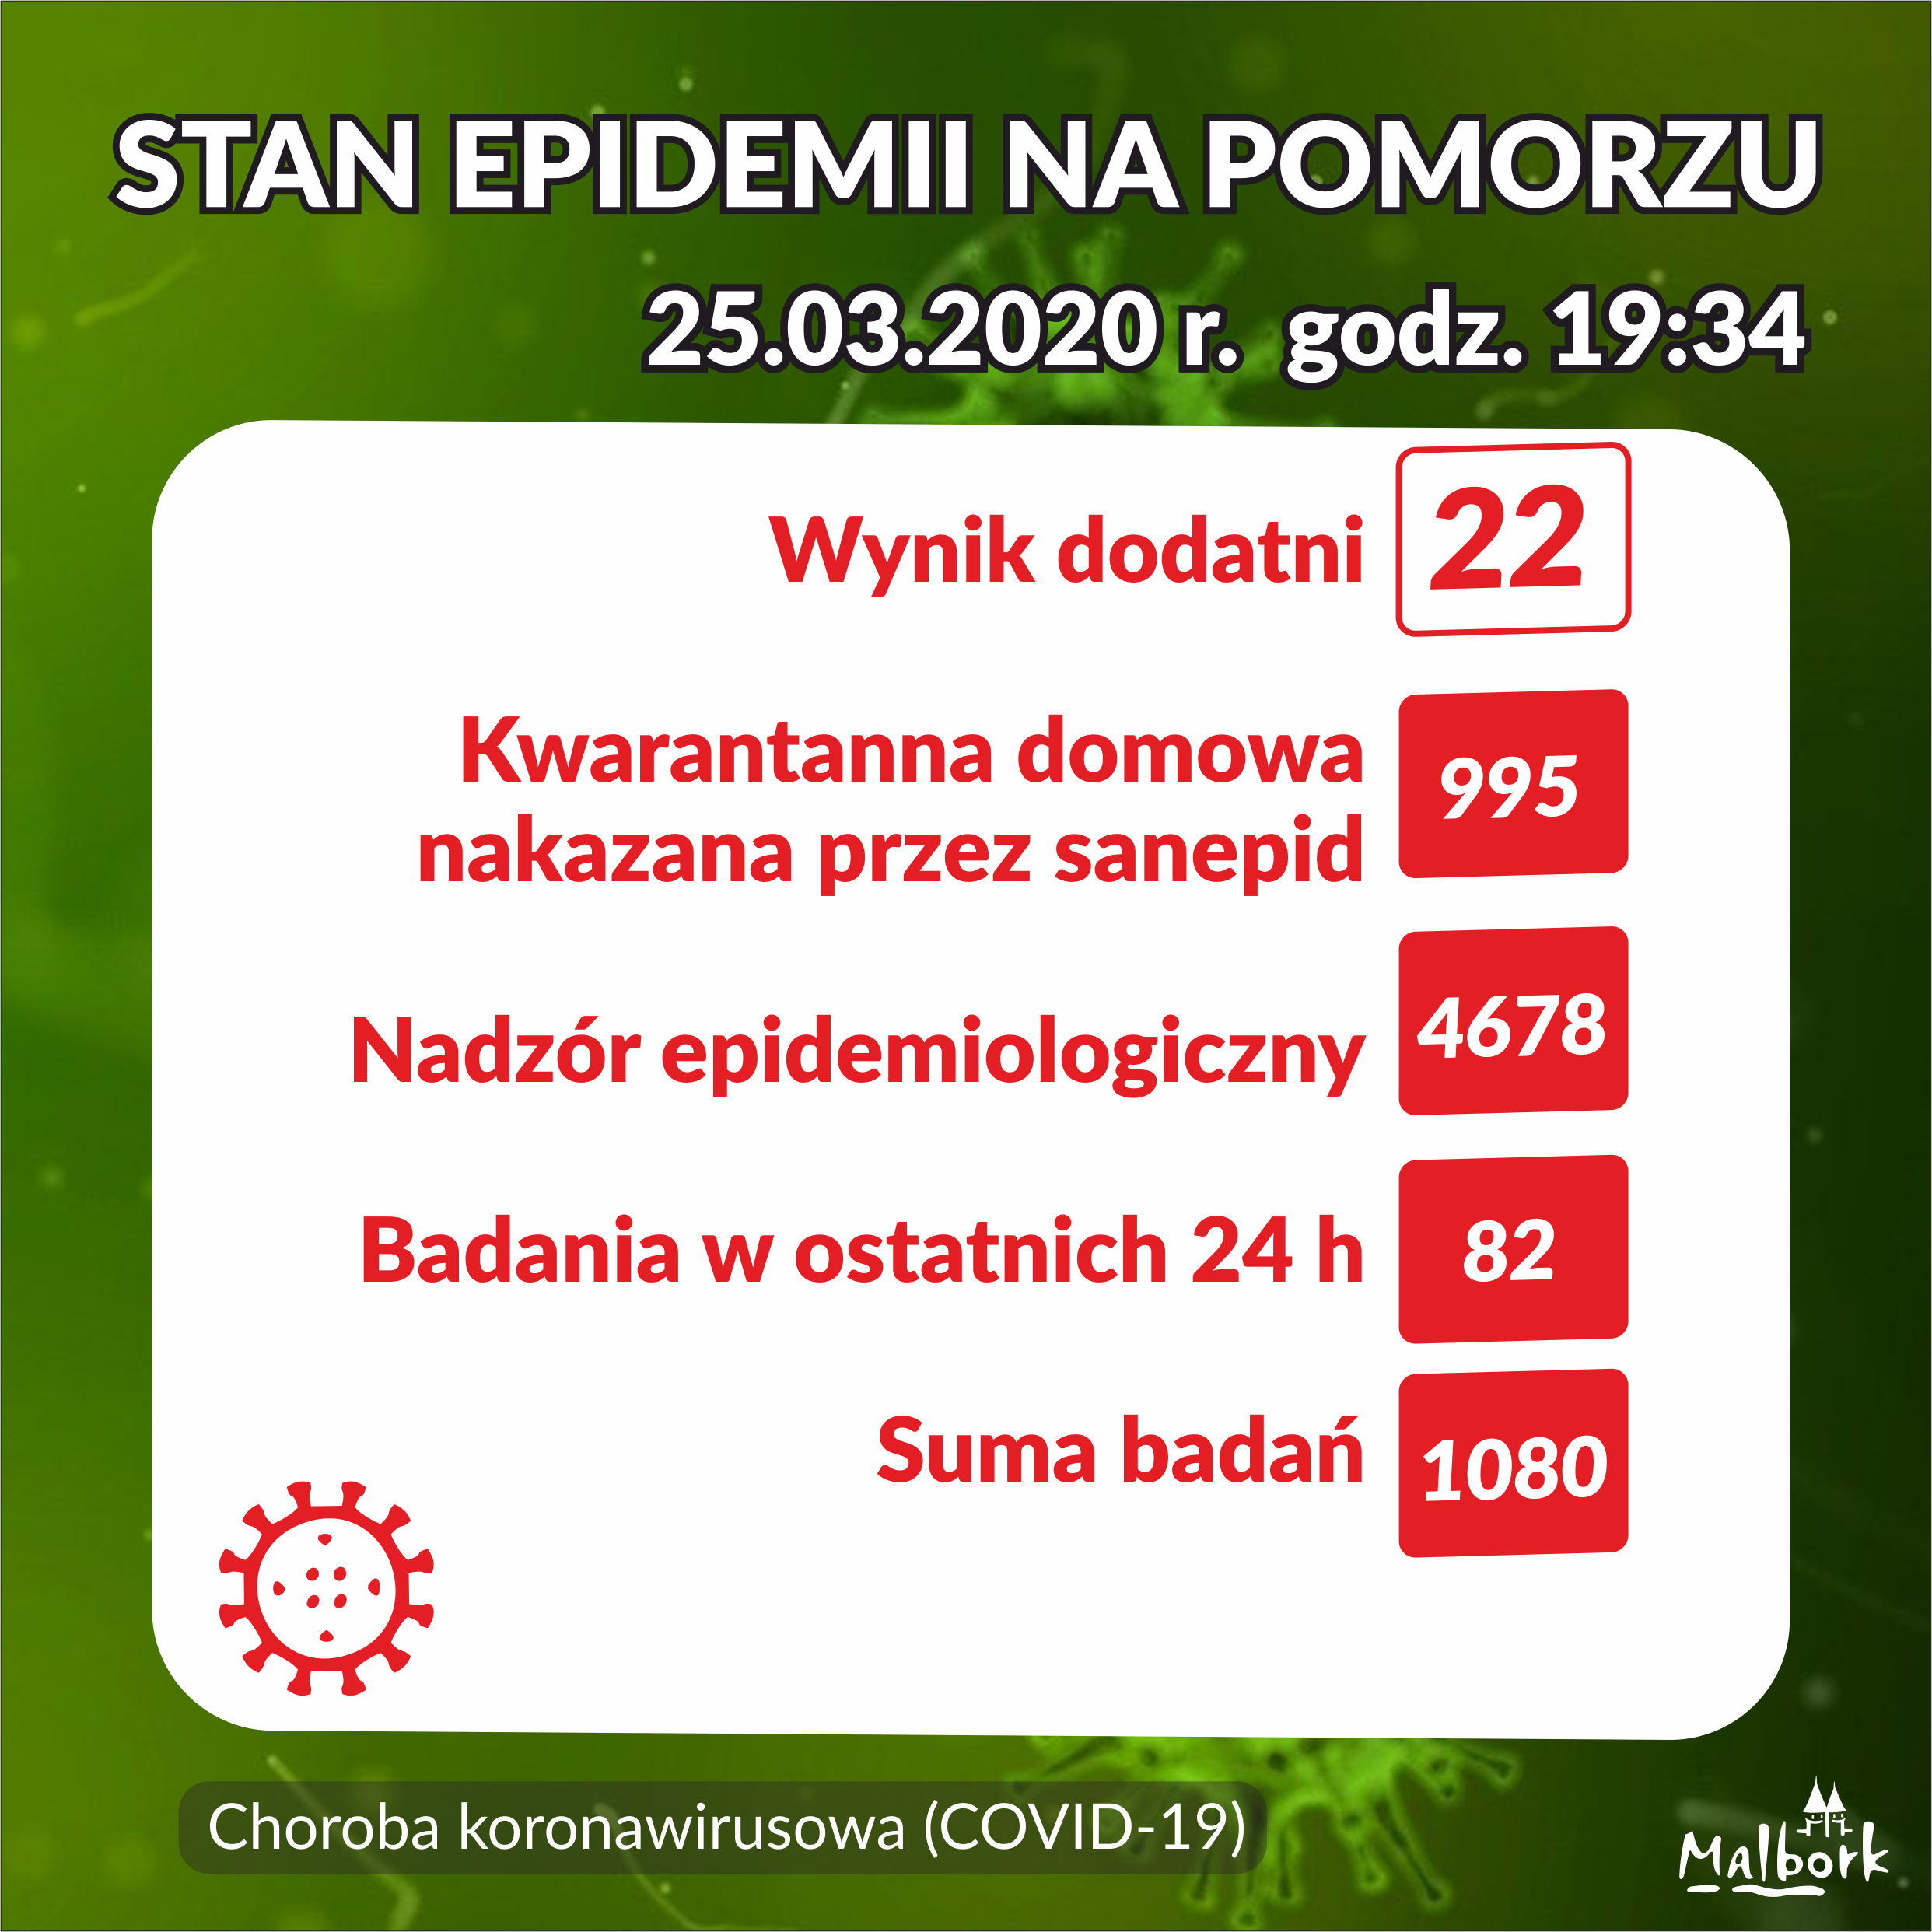 http://m.82-200.pl/2020/03/orig/stanepidemii-5689.png